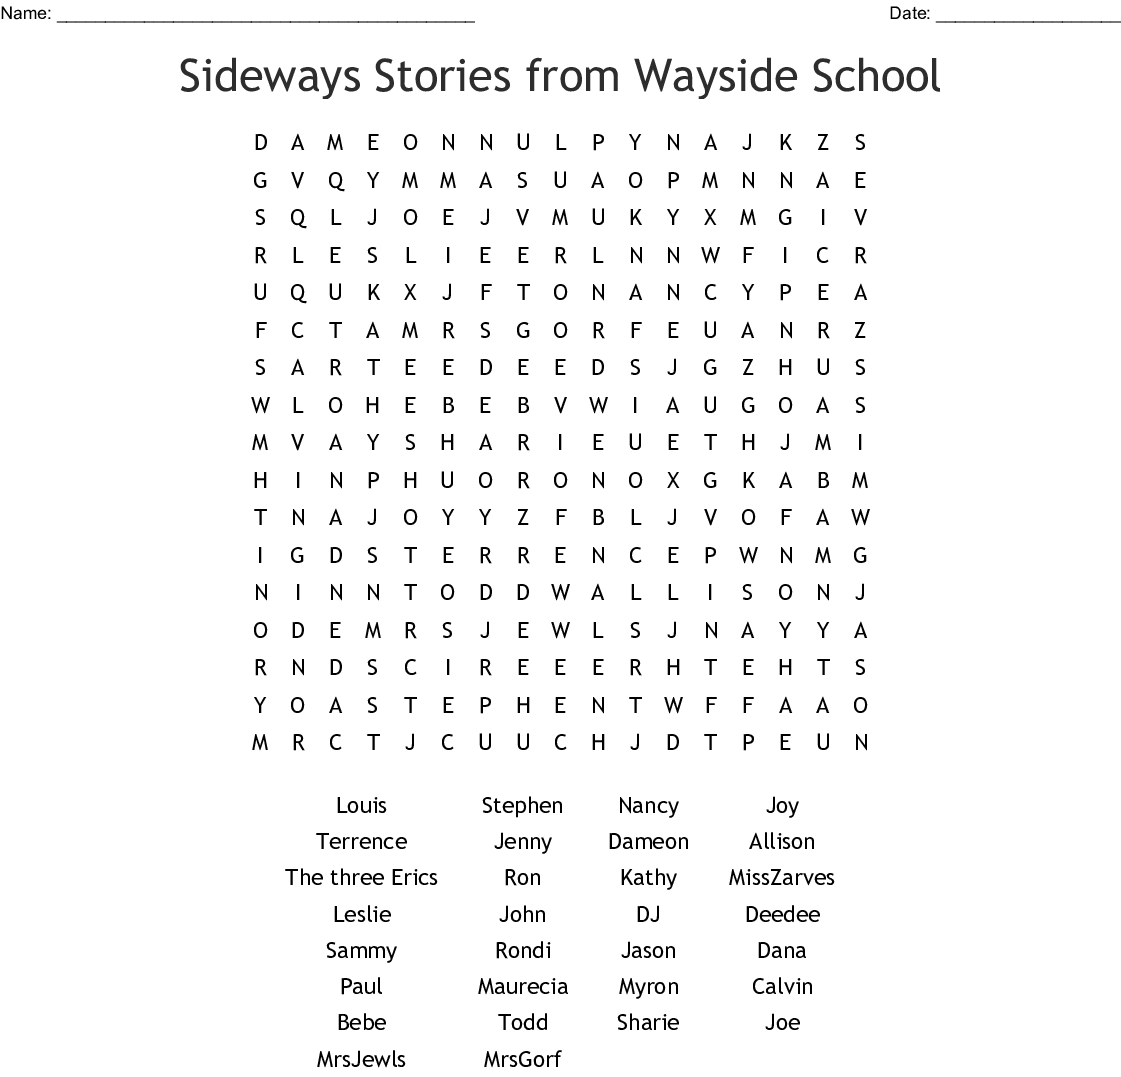 photograph regarding School Word Search Printable referred to as Sideways Reviews in opposition to Wayside Faculty Term Look - WordMint